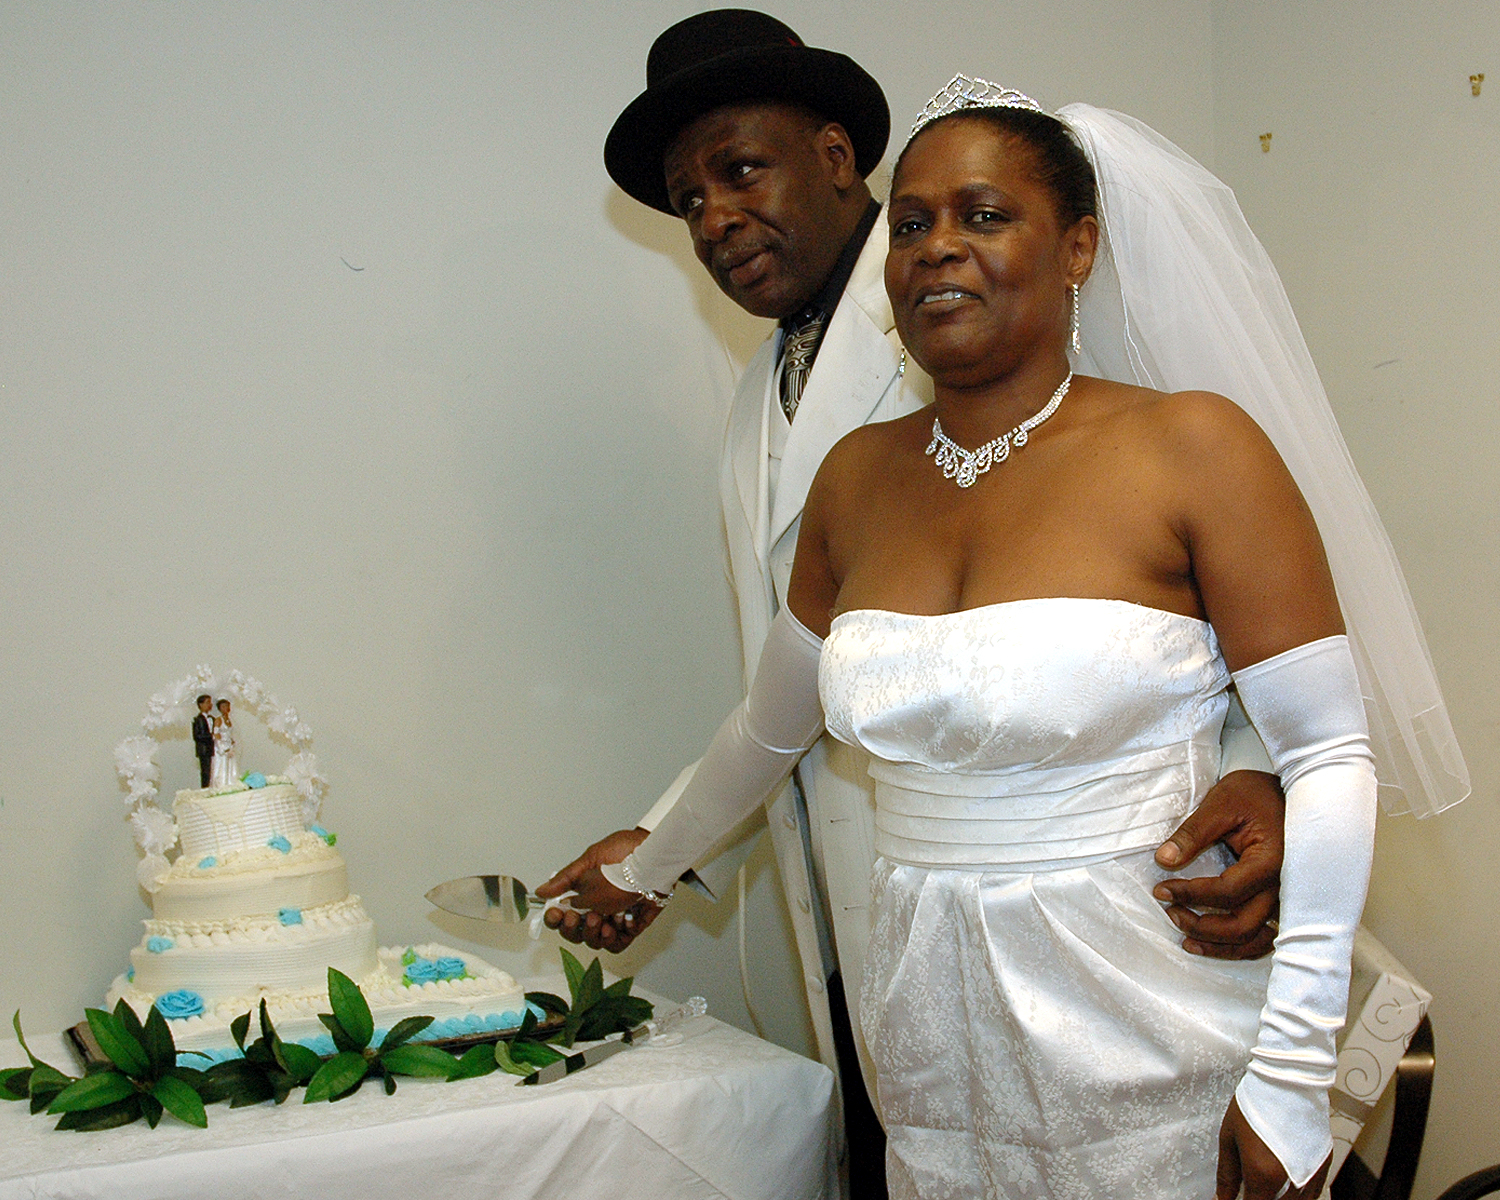 The Bride and Groom cutting their wedding cake